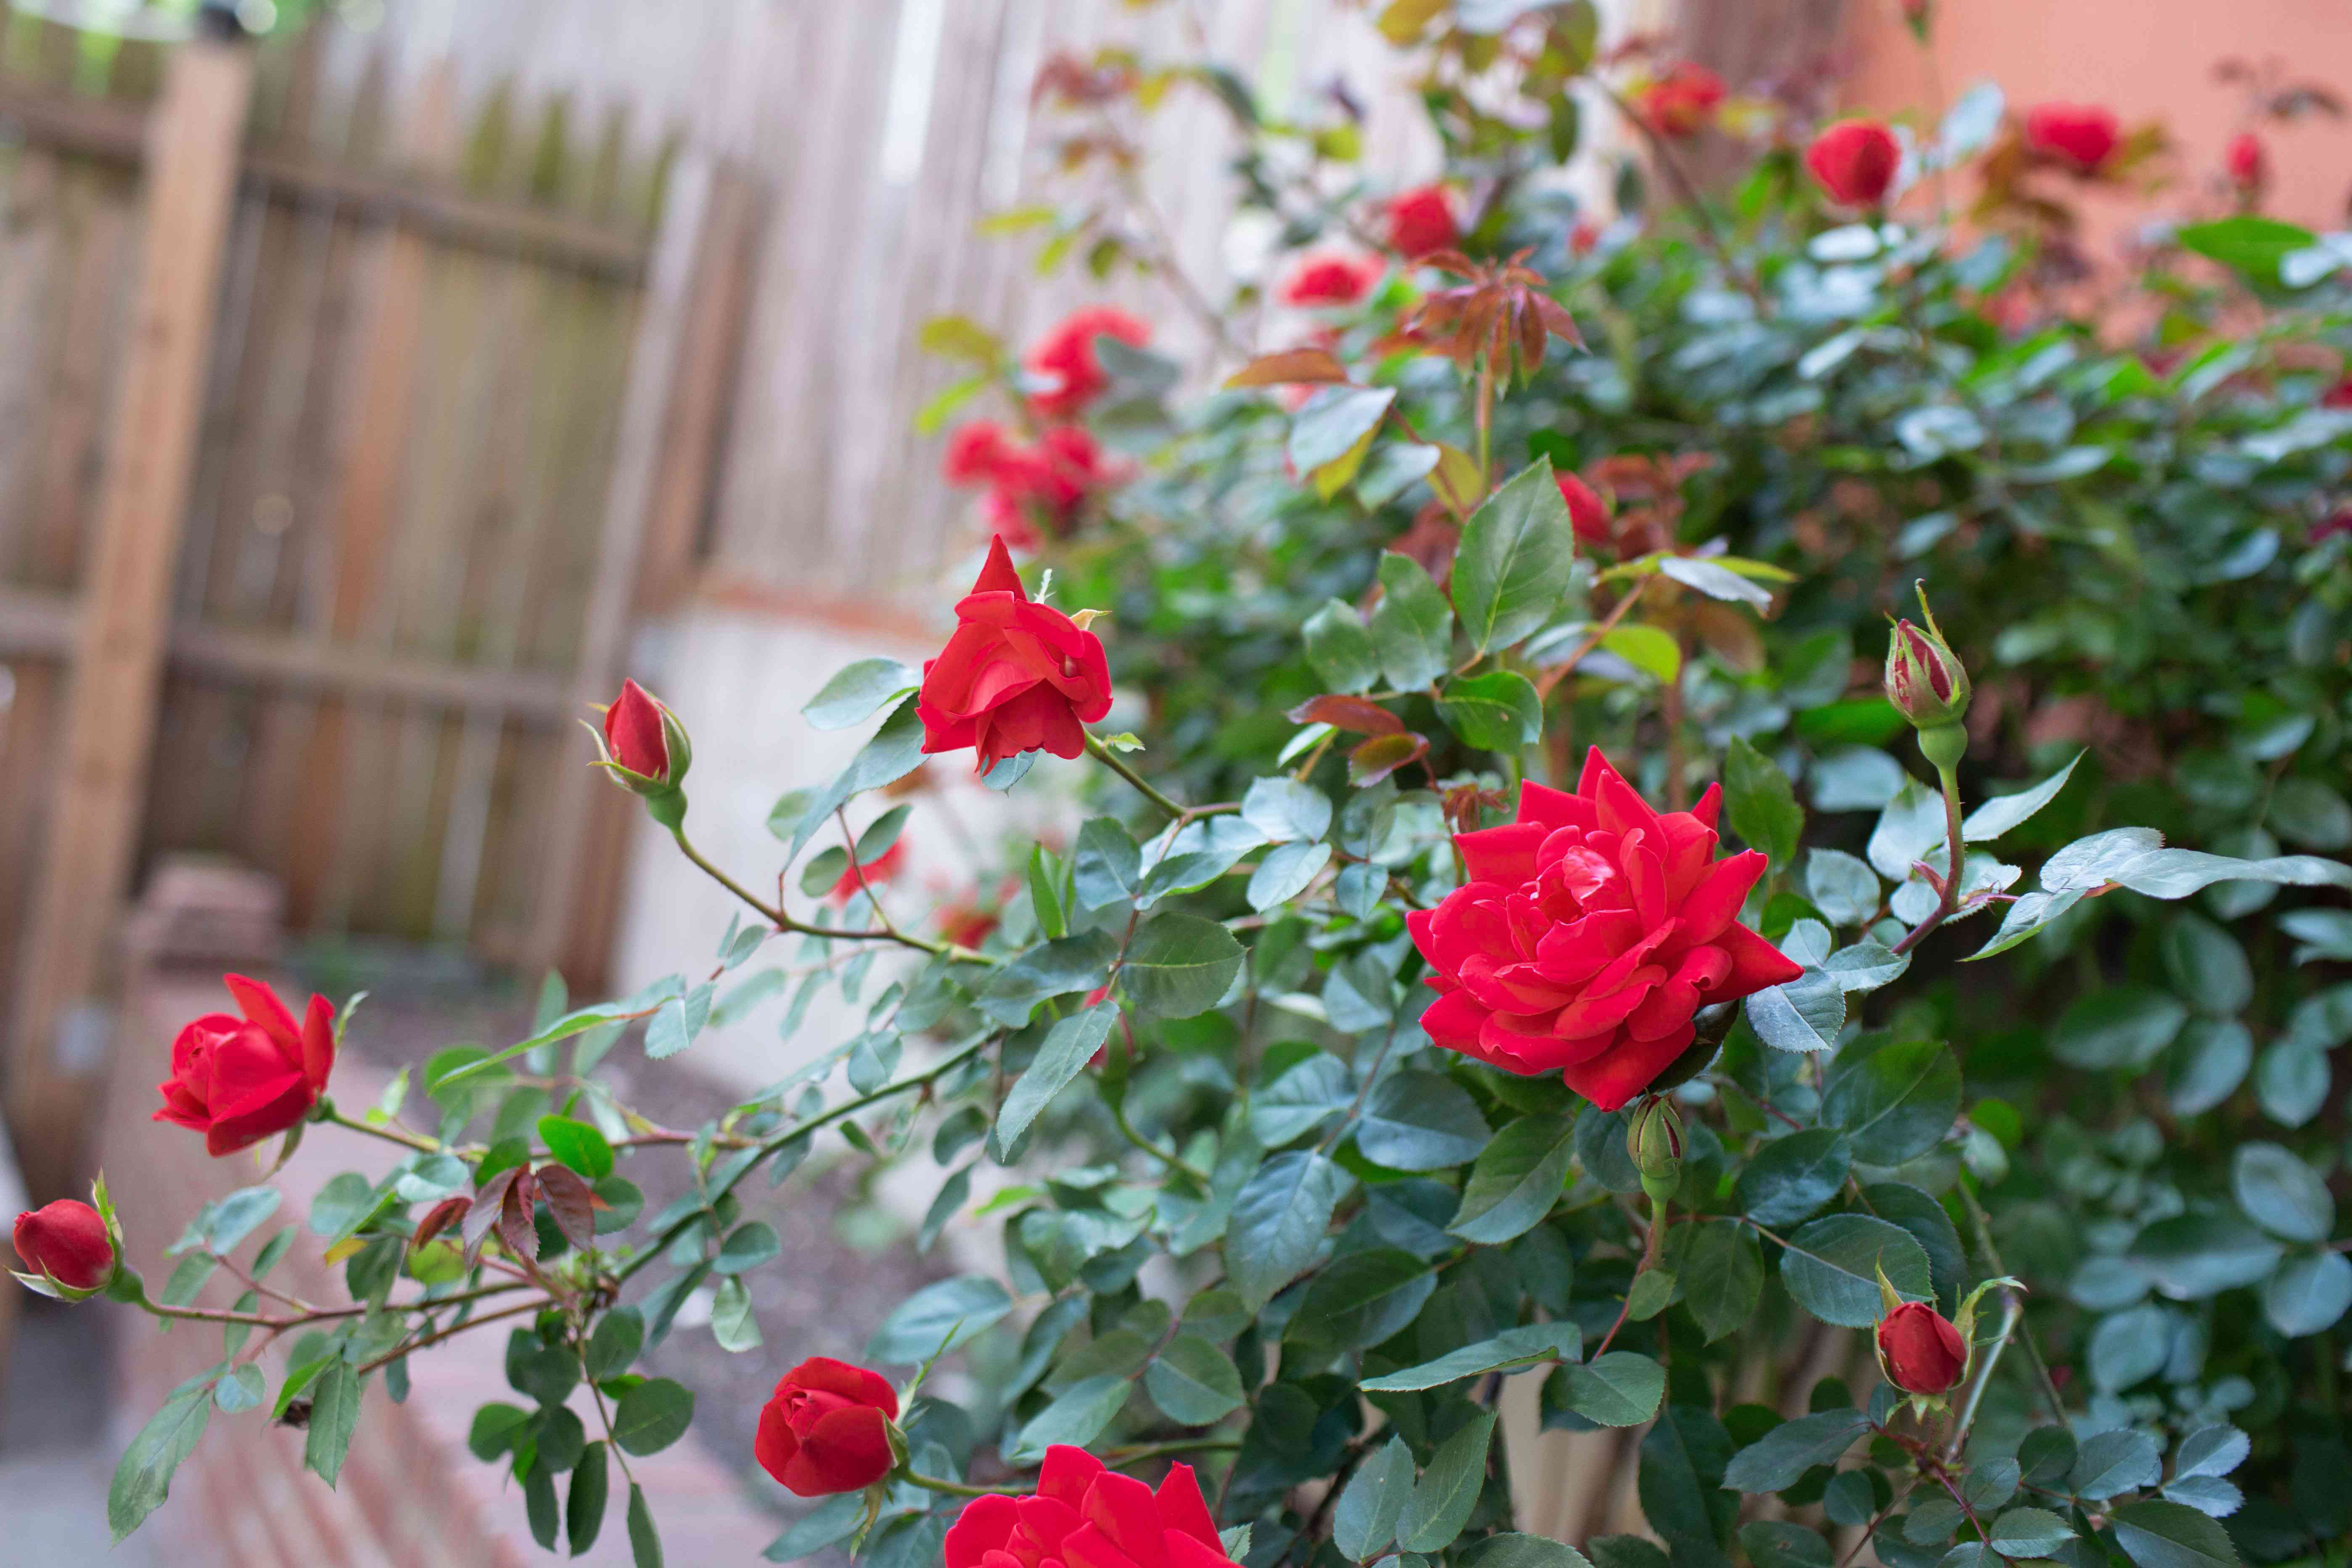 Red rose bush with vibrant red flowers inside fenced yard